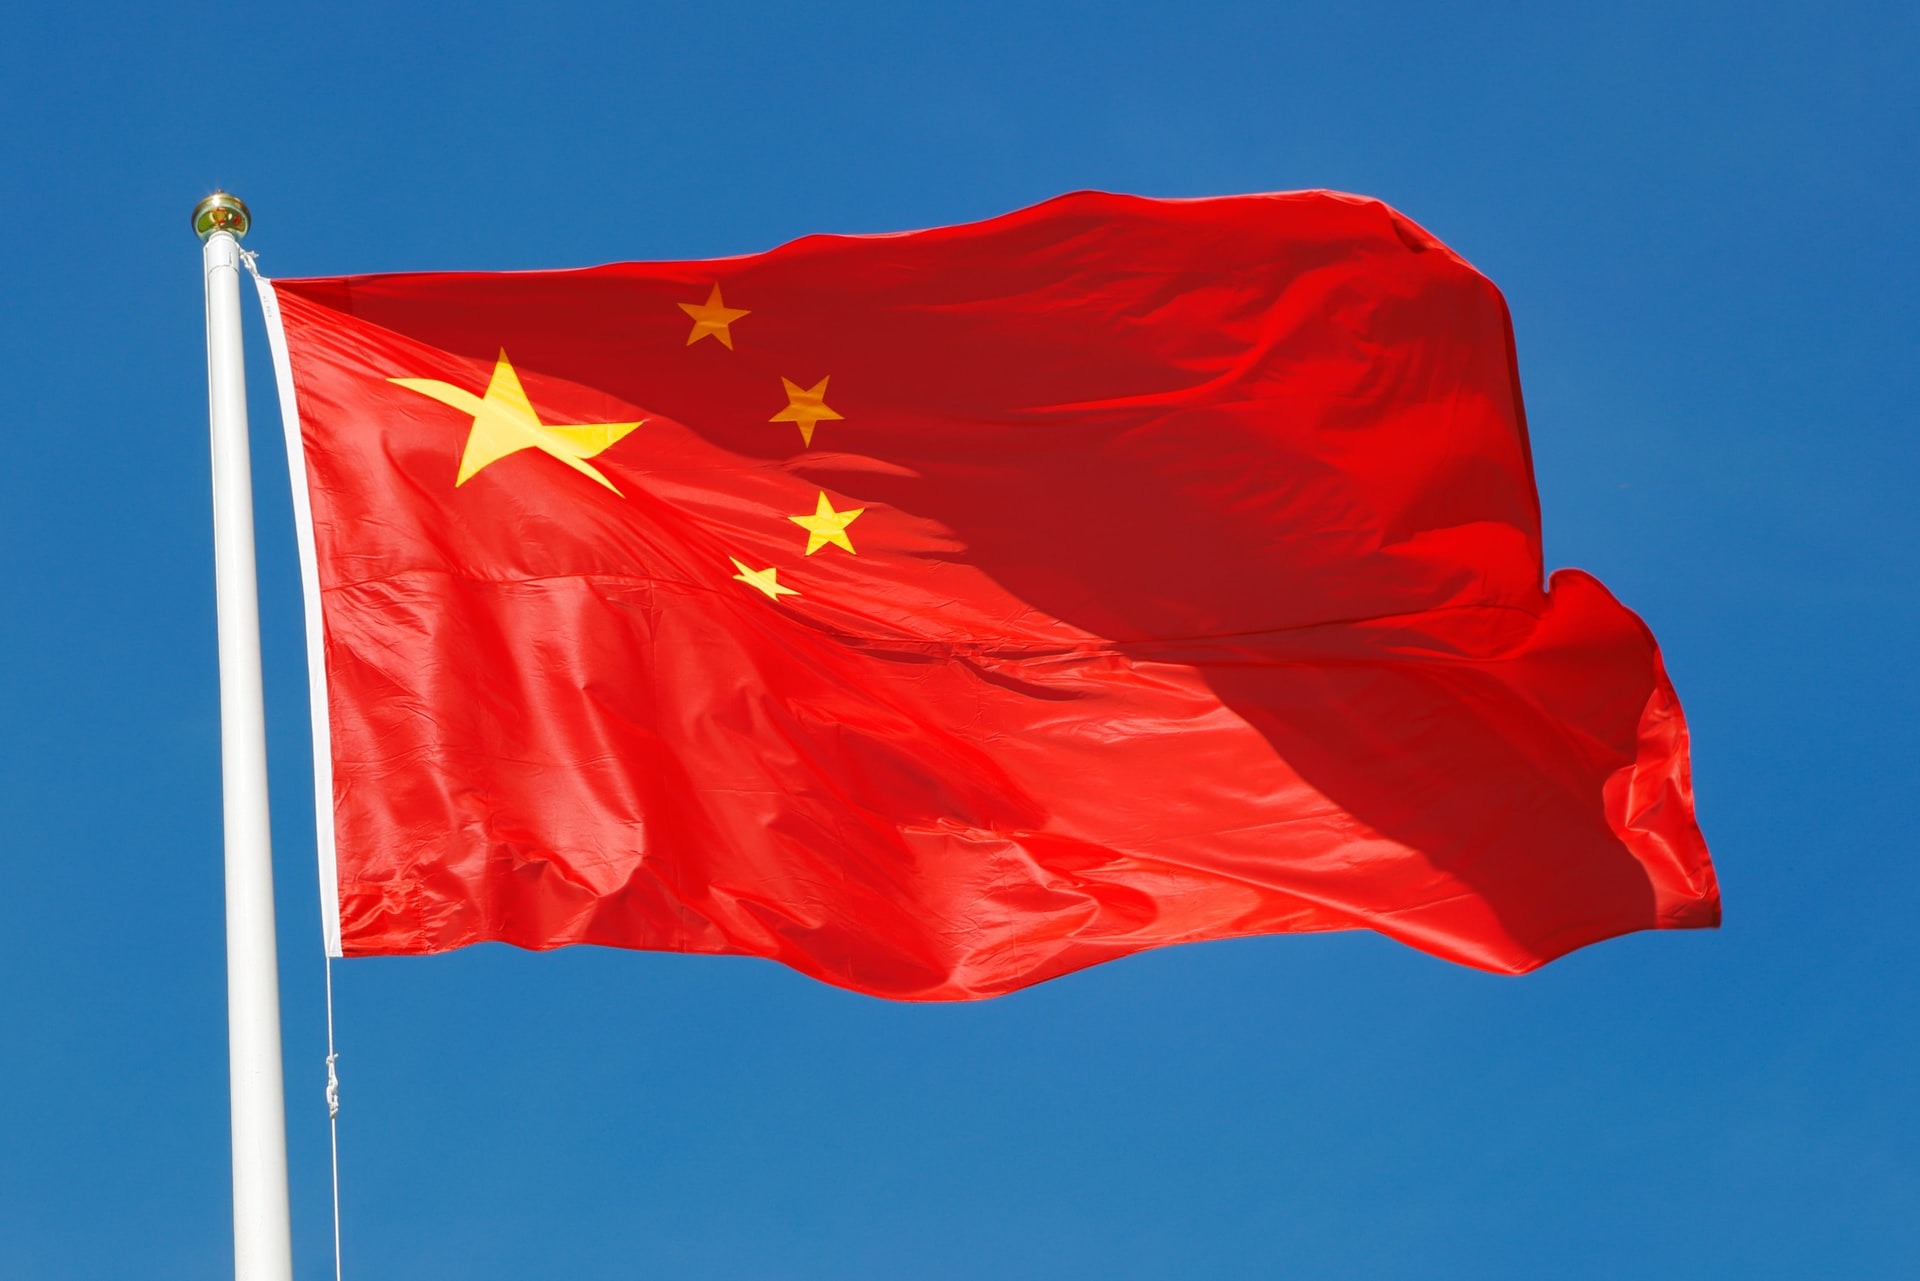 Photo of a Chinese flag